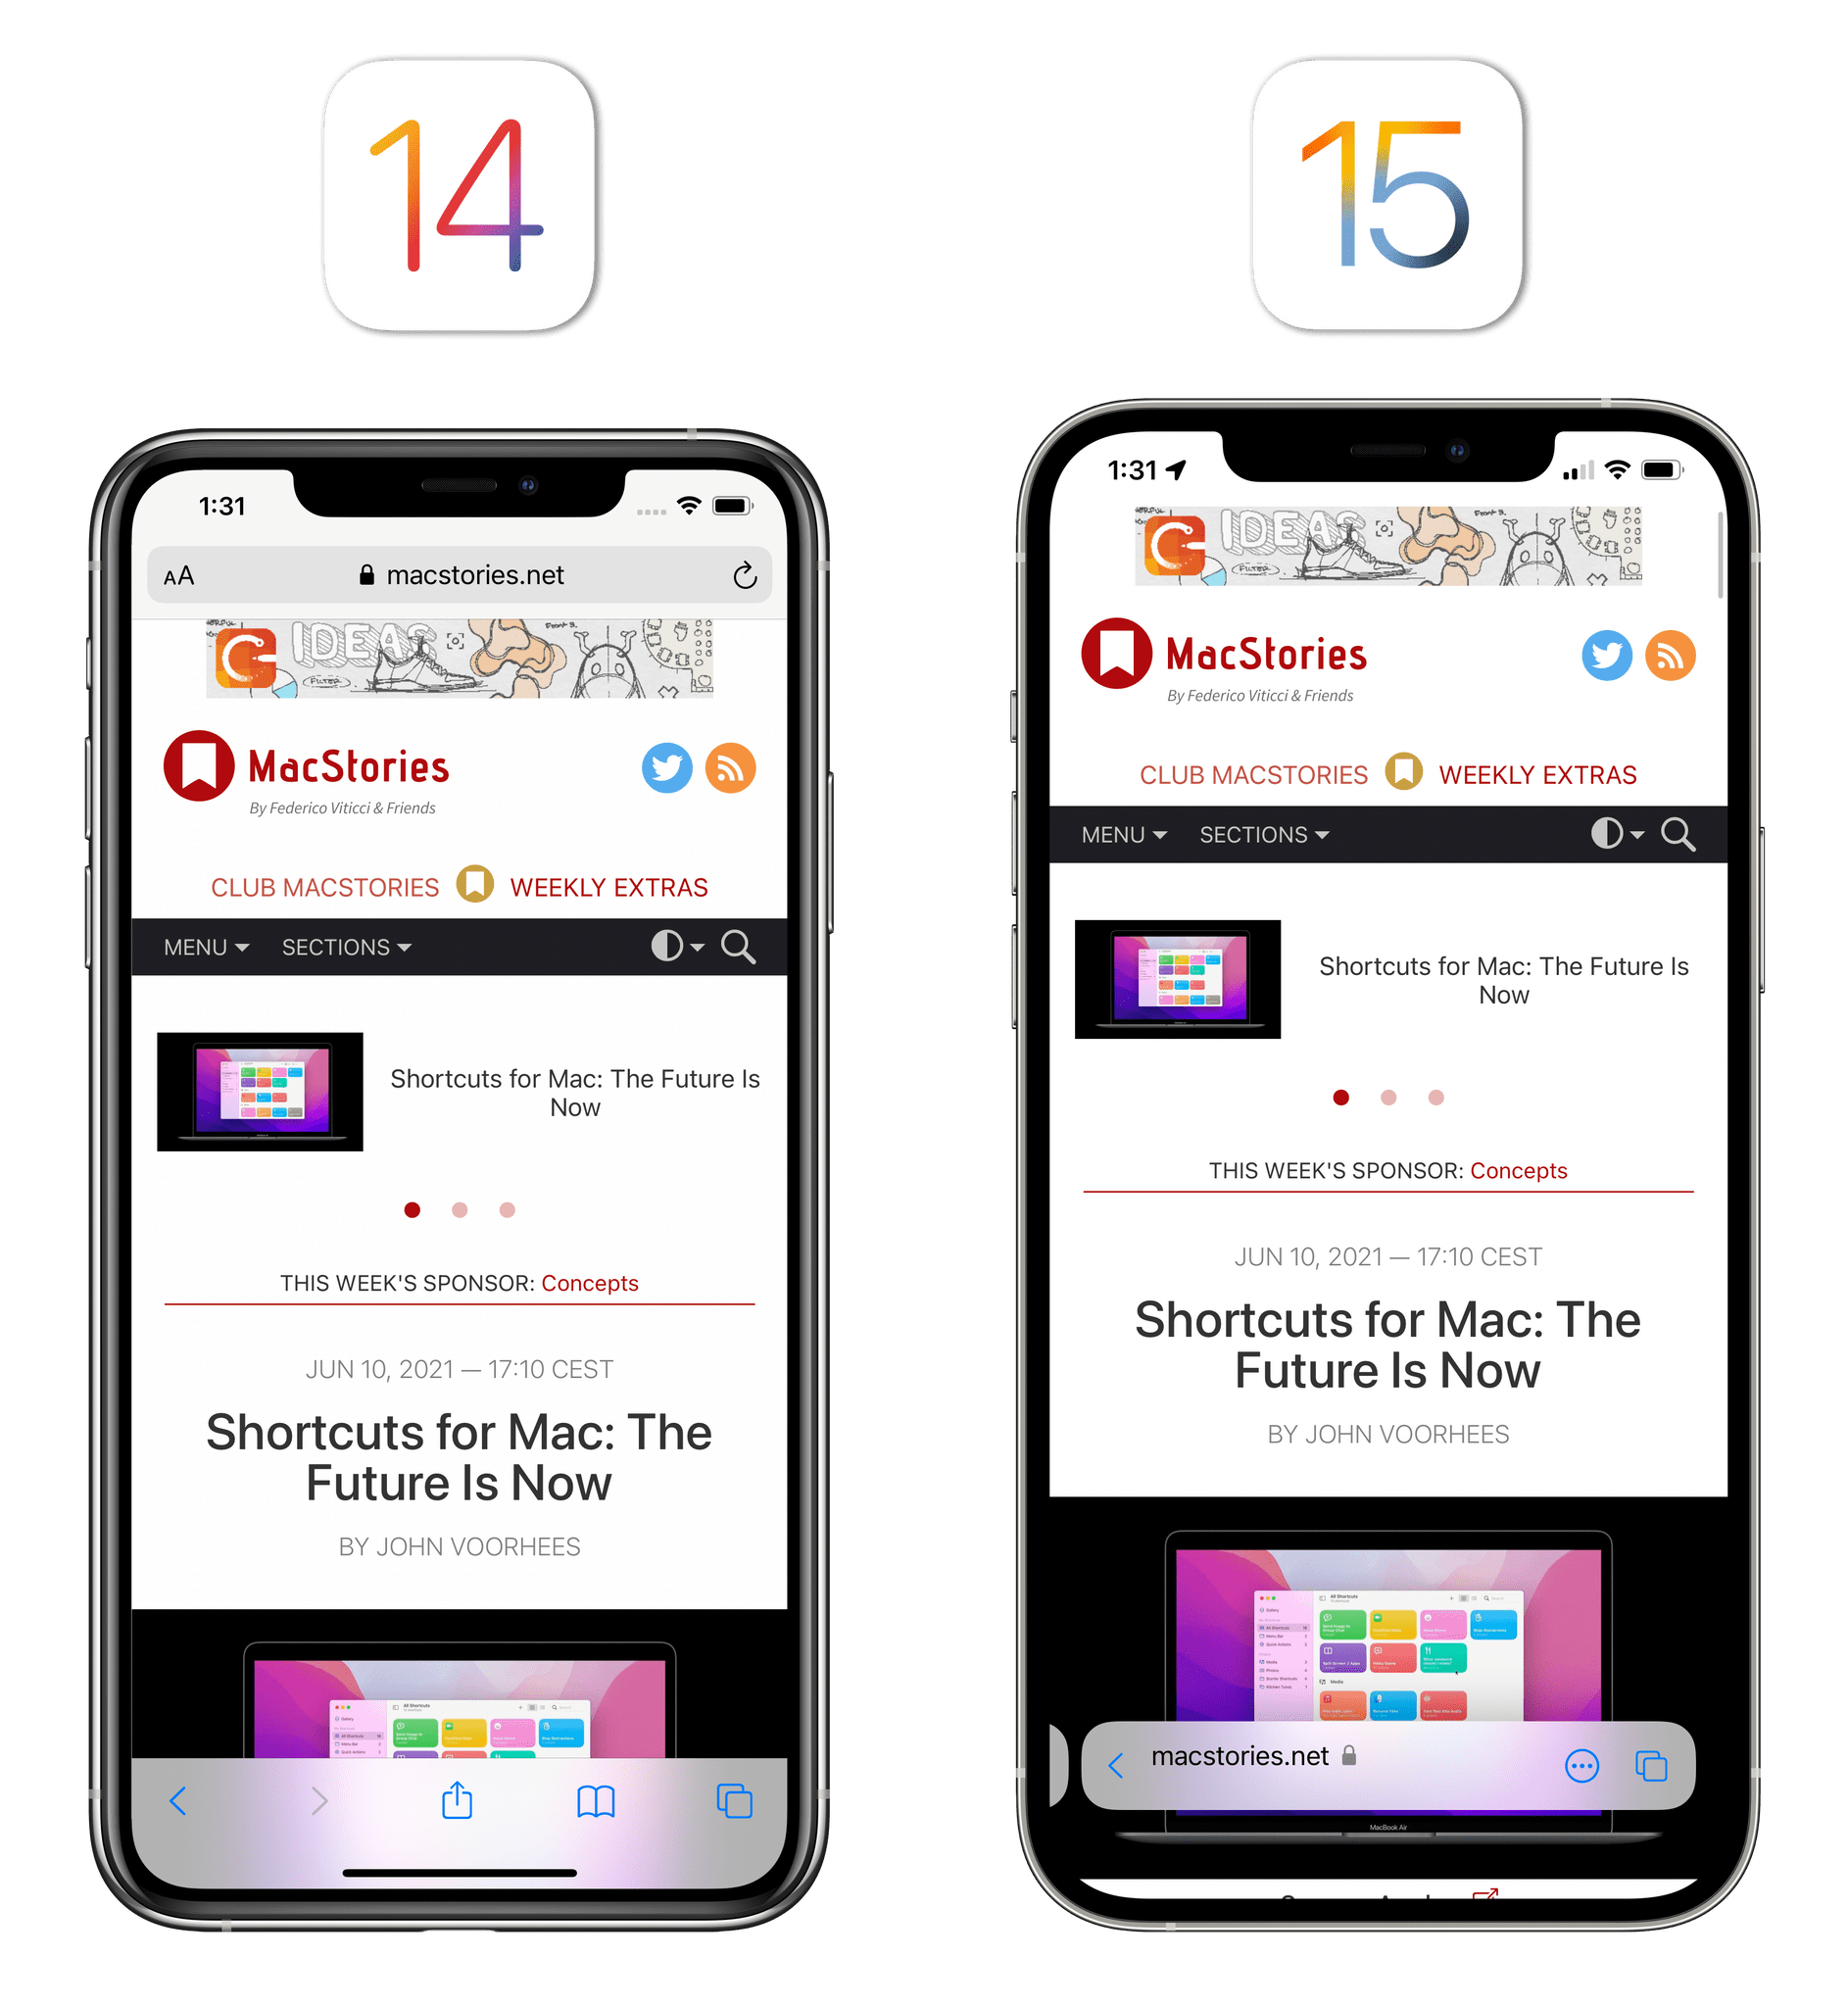 Old and new Safari for iPhone. For context, the phone running iOS 14 is a smaller iPhone XS Max.